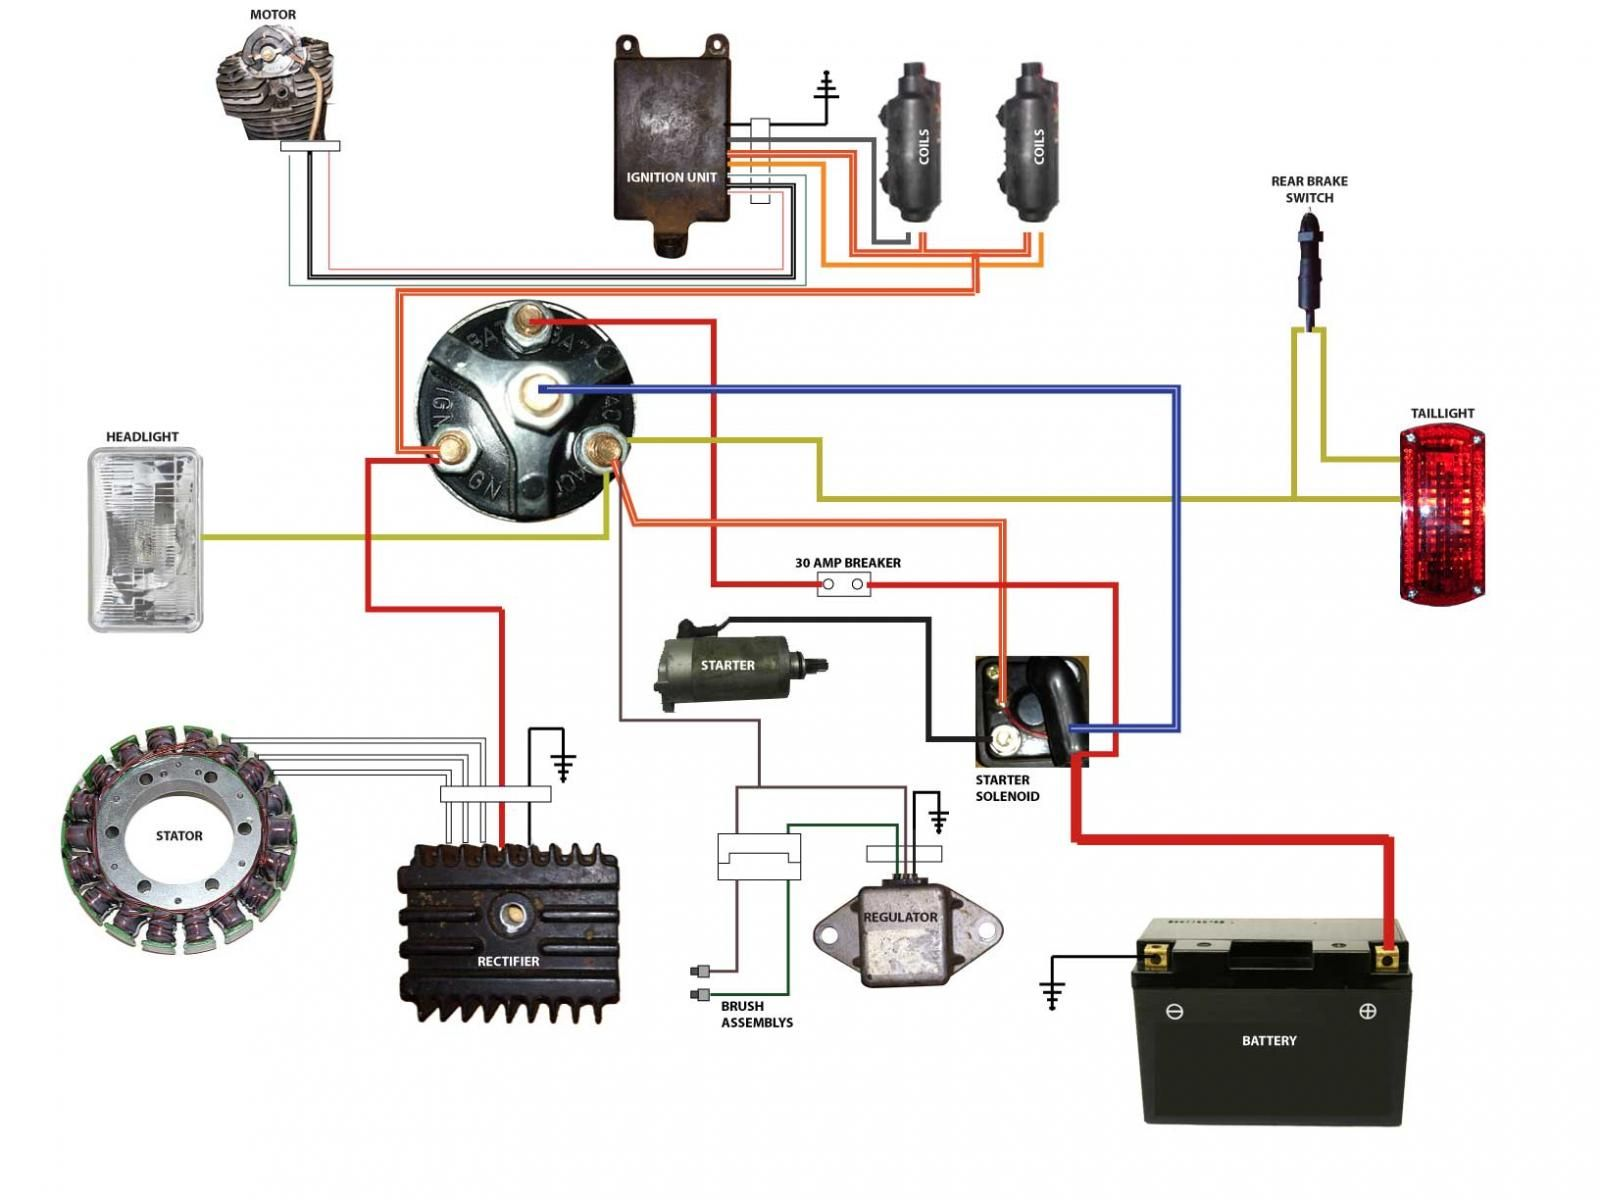 d72b6b9978ded4378b16620a38821410 simplified wiring diagram for xs400 cafe motorcycle wiring motorcycle wiring diagram at reclaimingppi.co